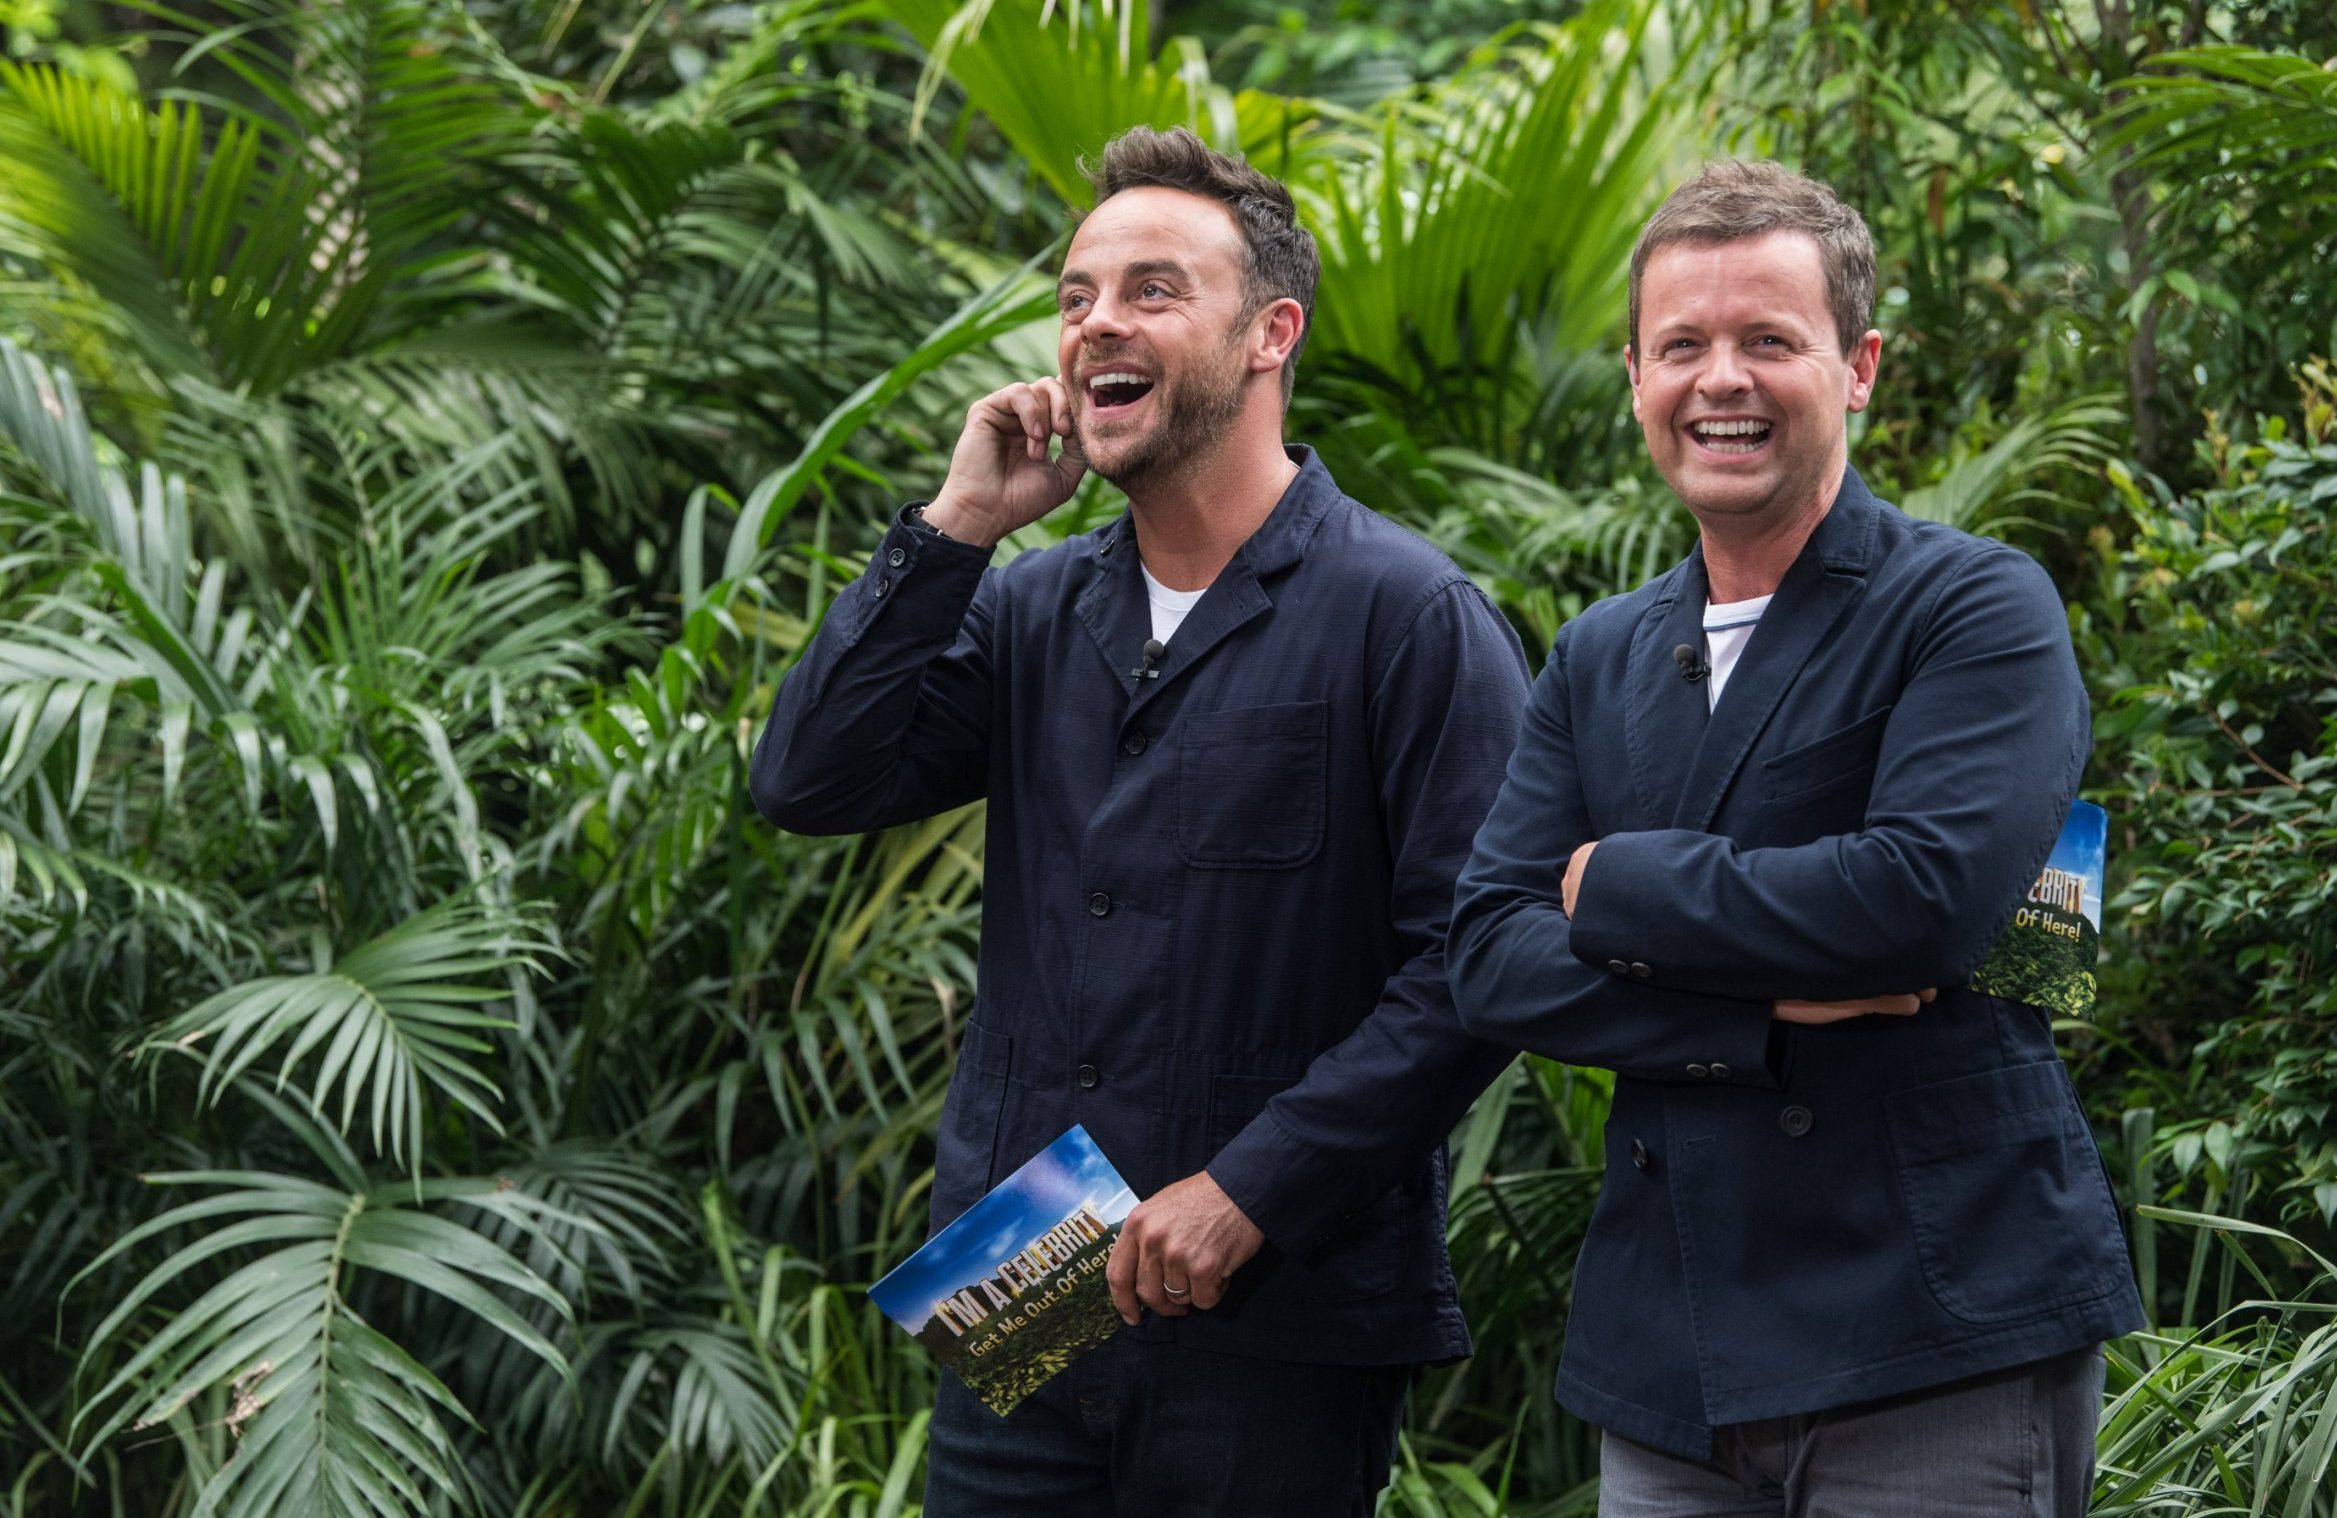 Ant and Dec are actually way more involved in the I'm A Celebrity casting process than we thought